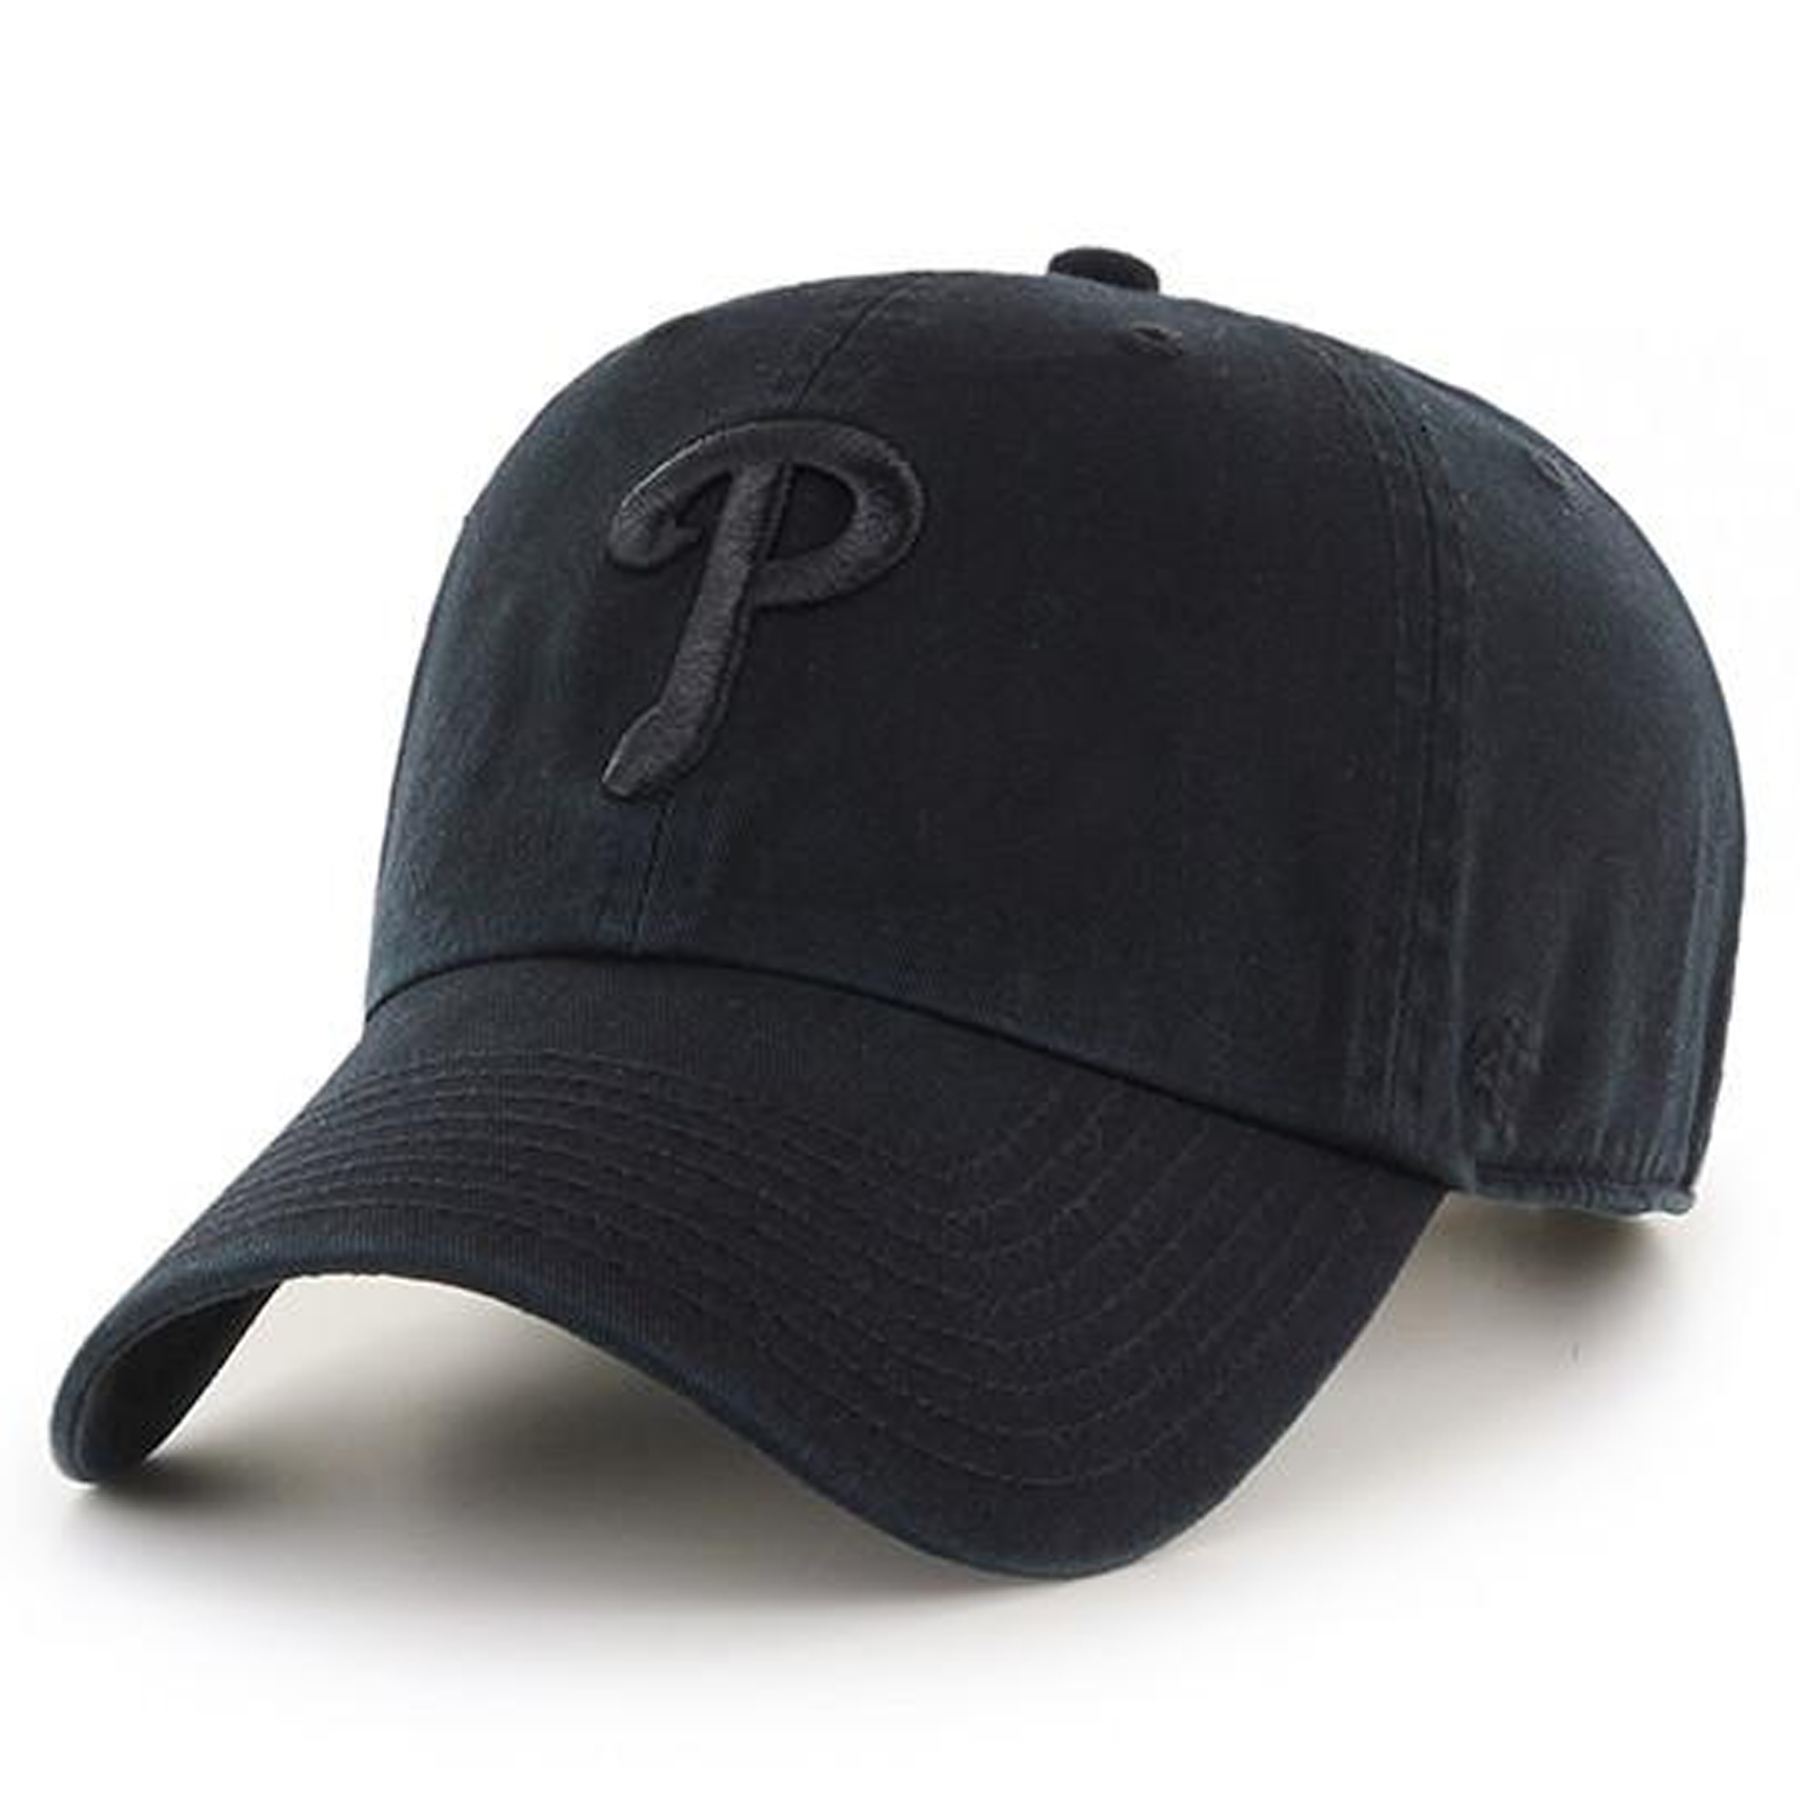 99f80d4916349 on the front of the black on black philadelphia phillies dad hat is the  philadelphia phillies